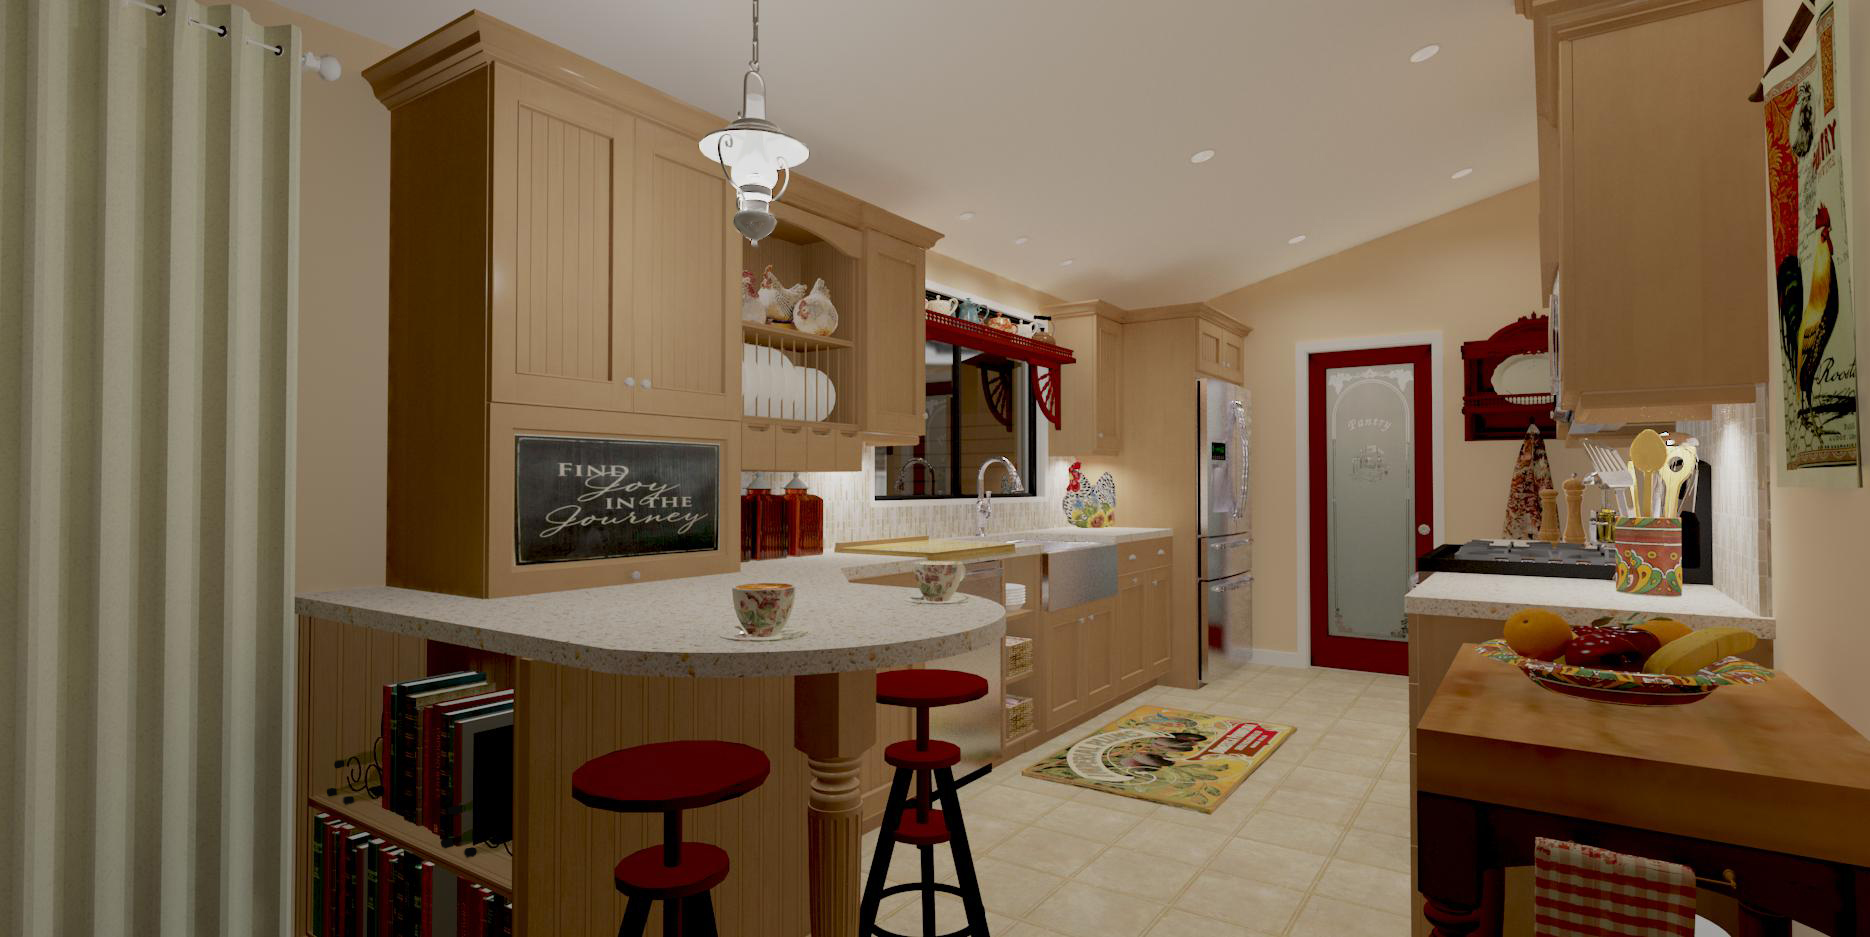 kitchen ideas for single wide mobile homes mobile home kitchen remodel decorating ideas for mobile homes